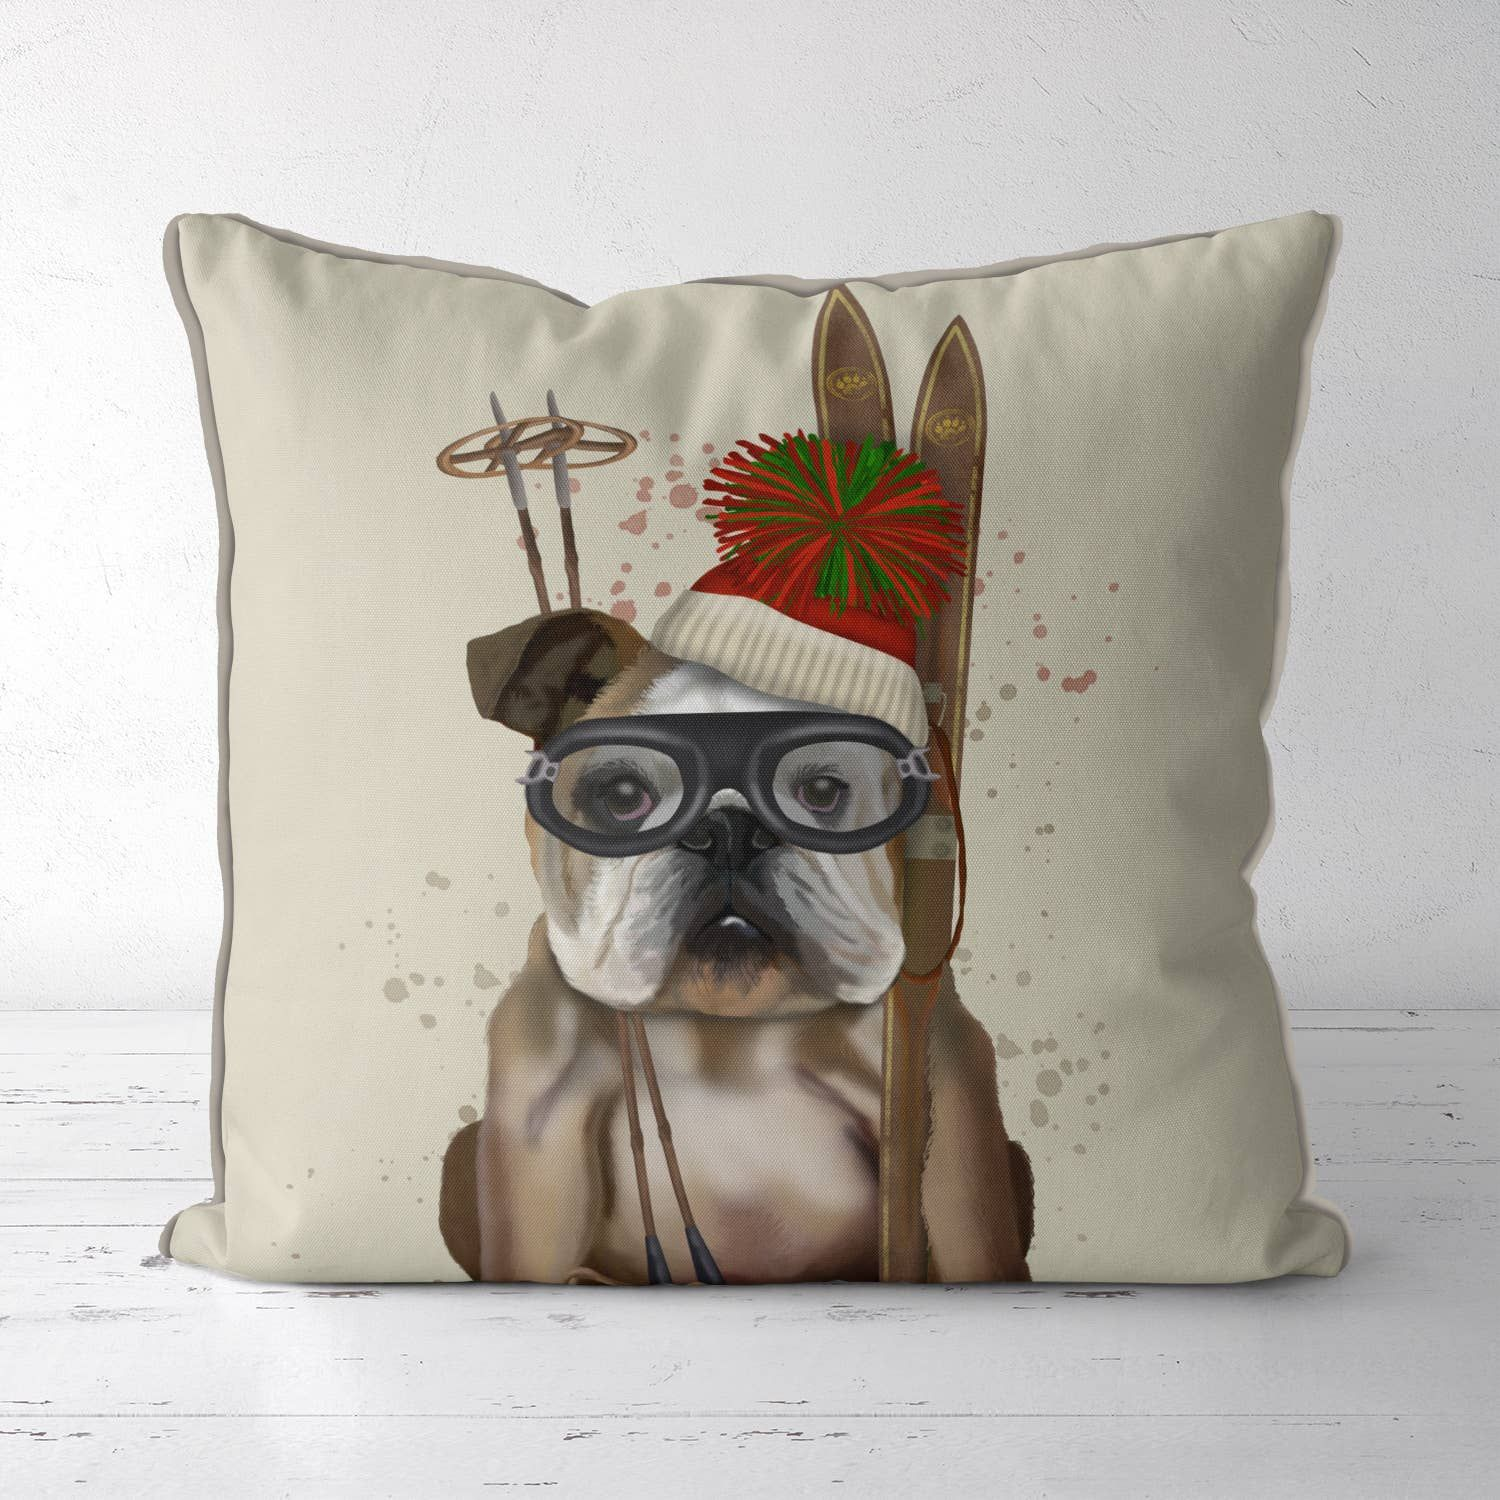 English Bulldog, Skiing Pillow